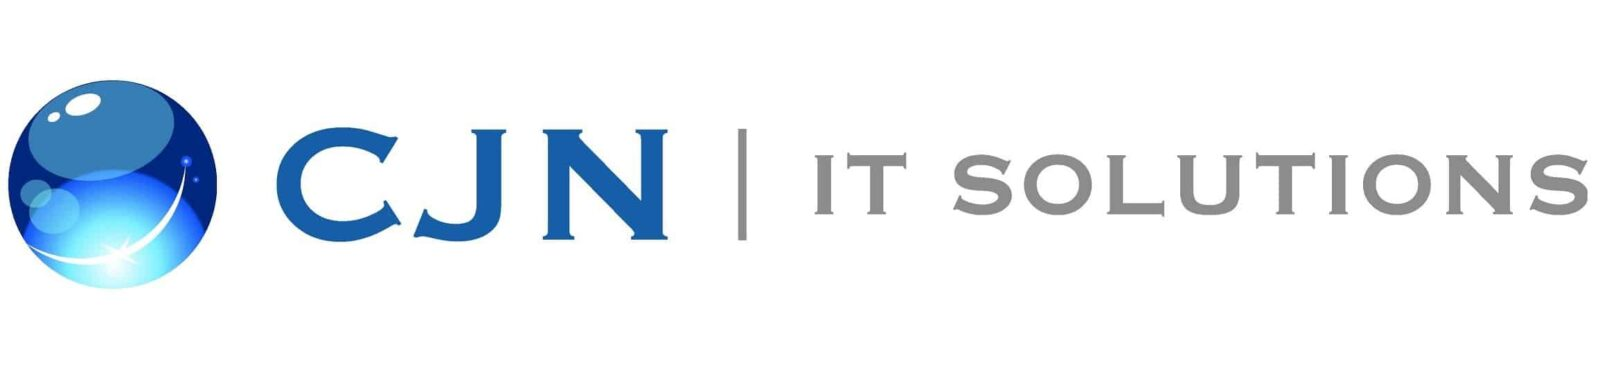 CJN IT Solutions logo website